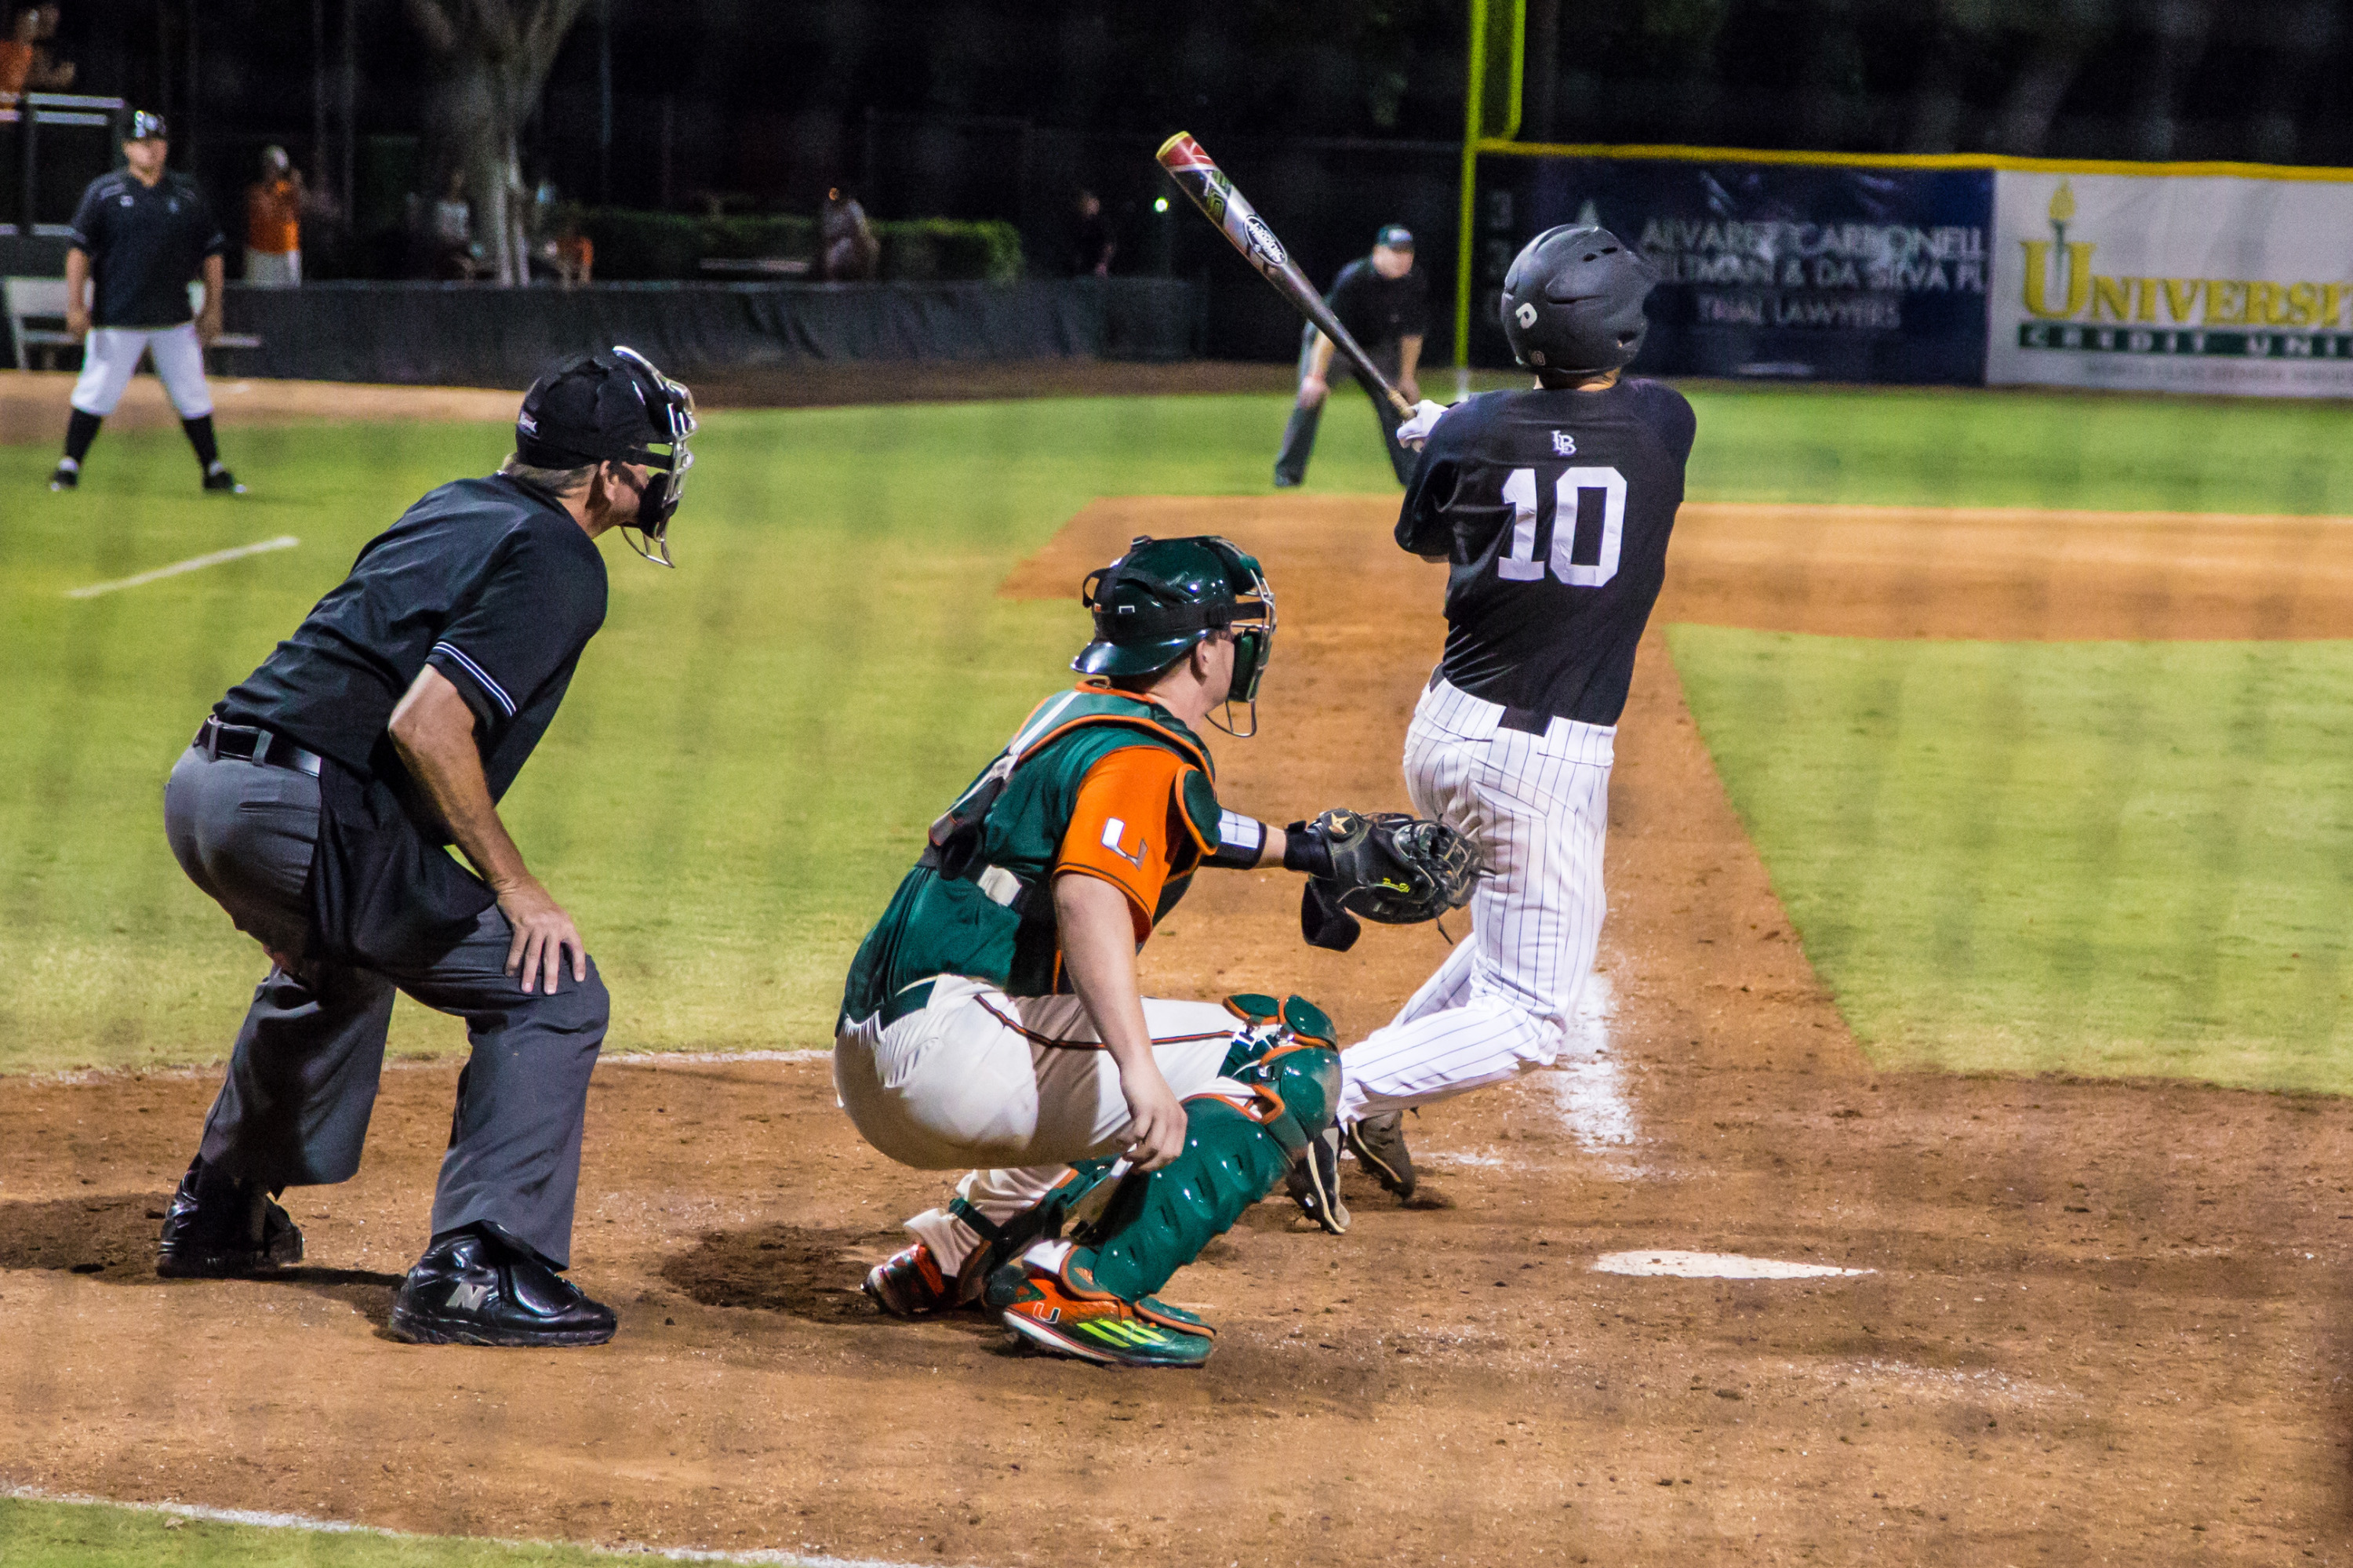 Junior Jeff Nellis hit a pinch-hit, game-tying home run with two outs in the ninth inning to keep Long Beach State's hopes alive in Saturday night's NCAA Regional matchup with Miami.